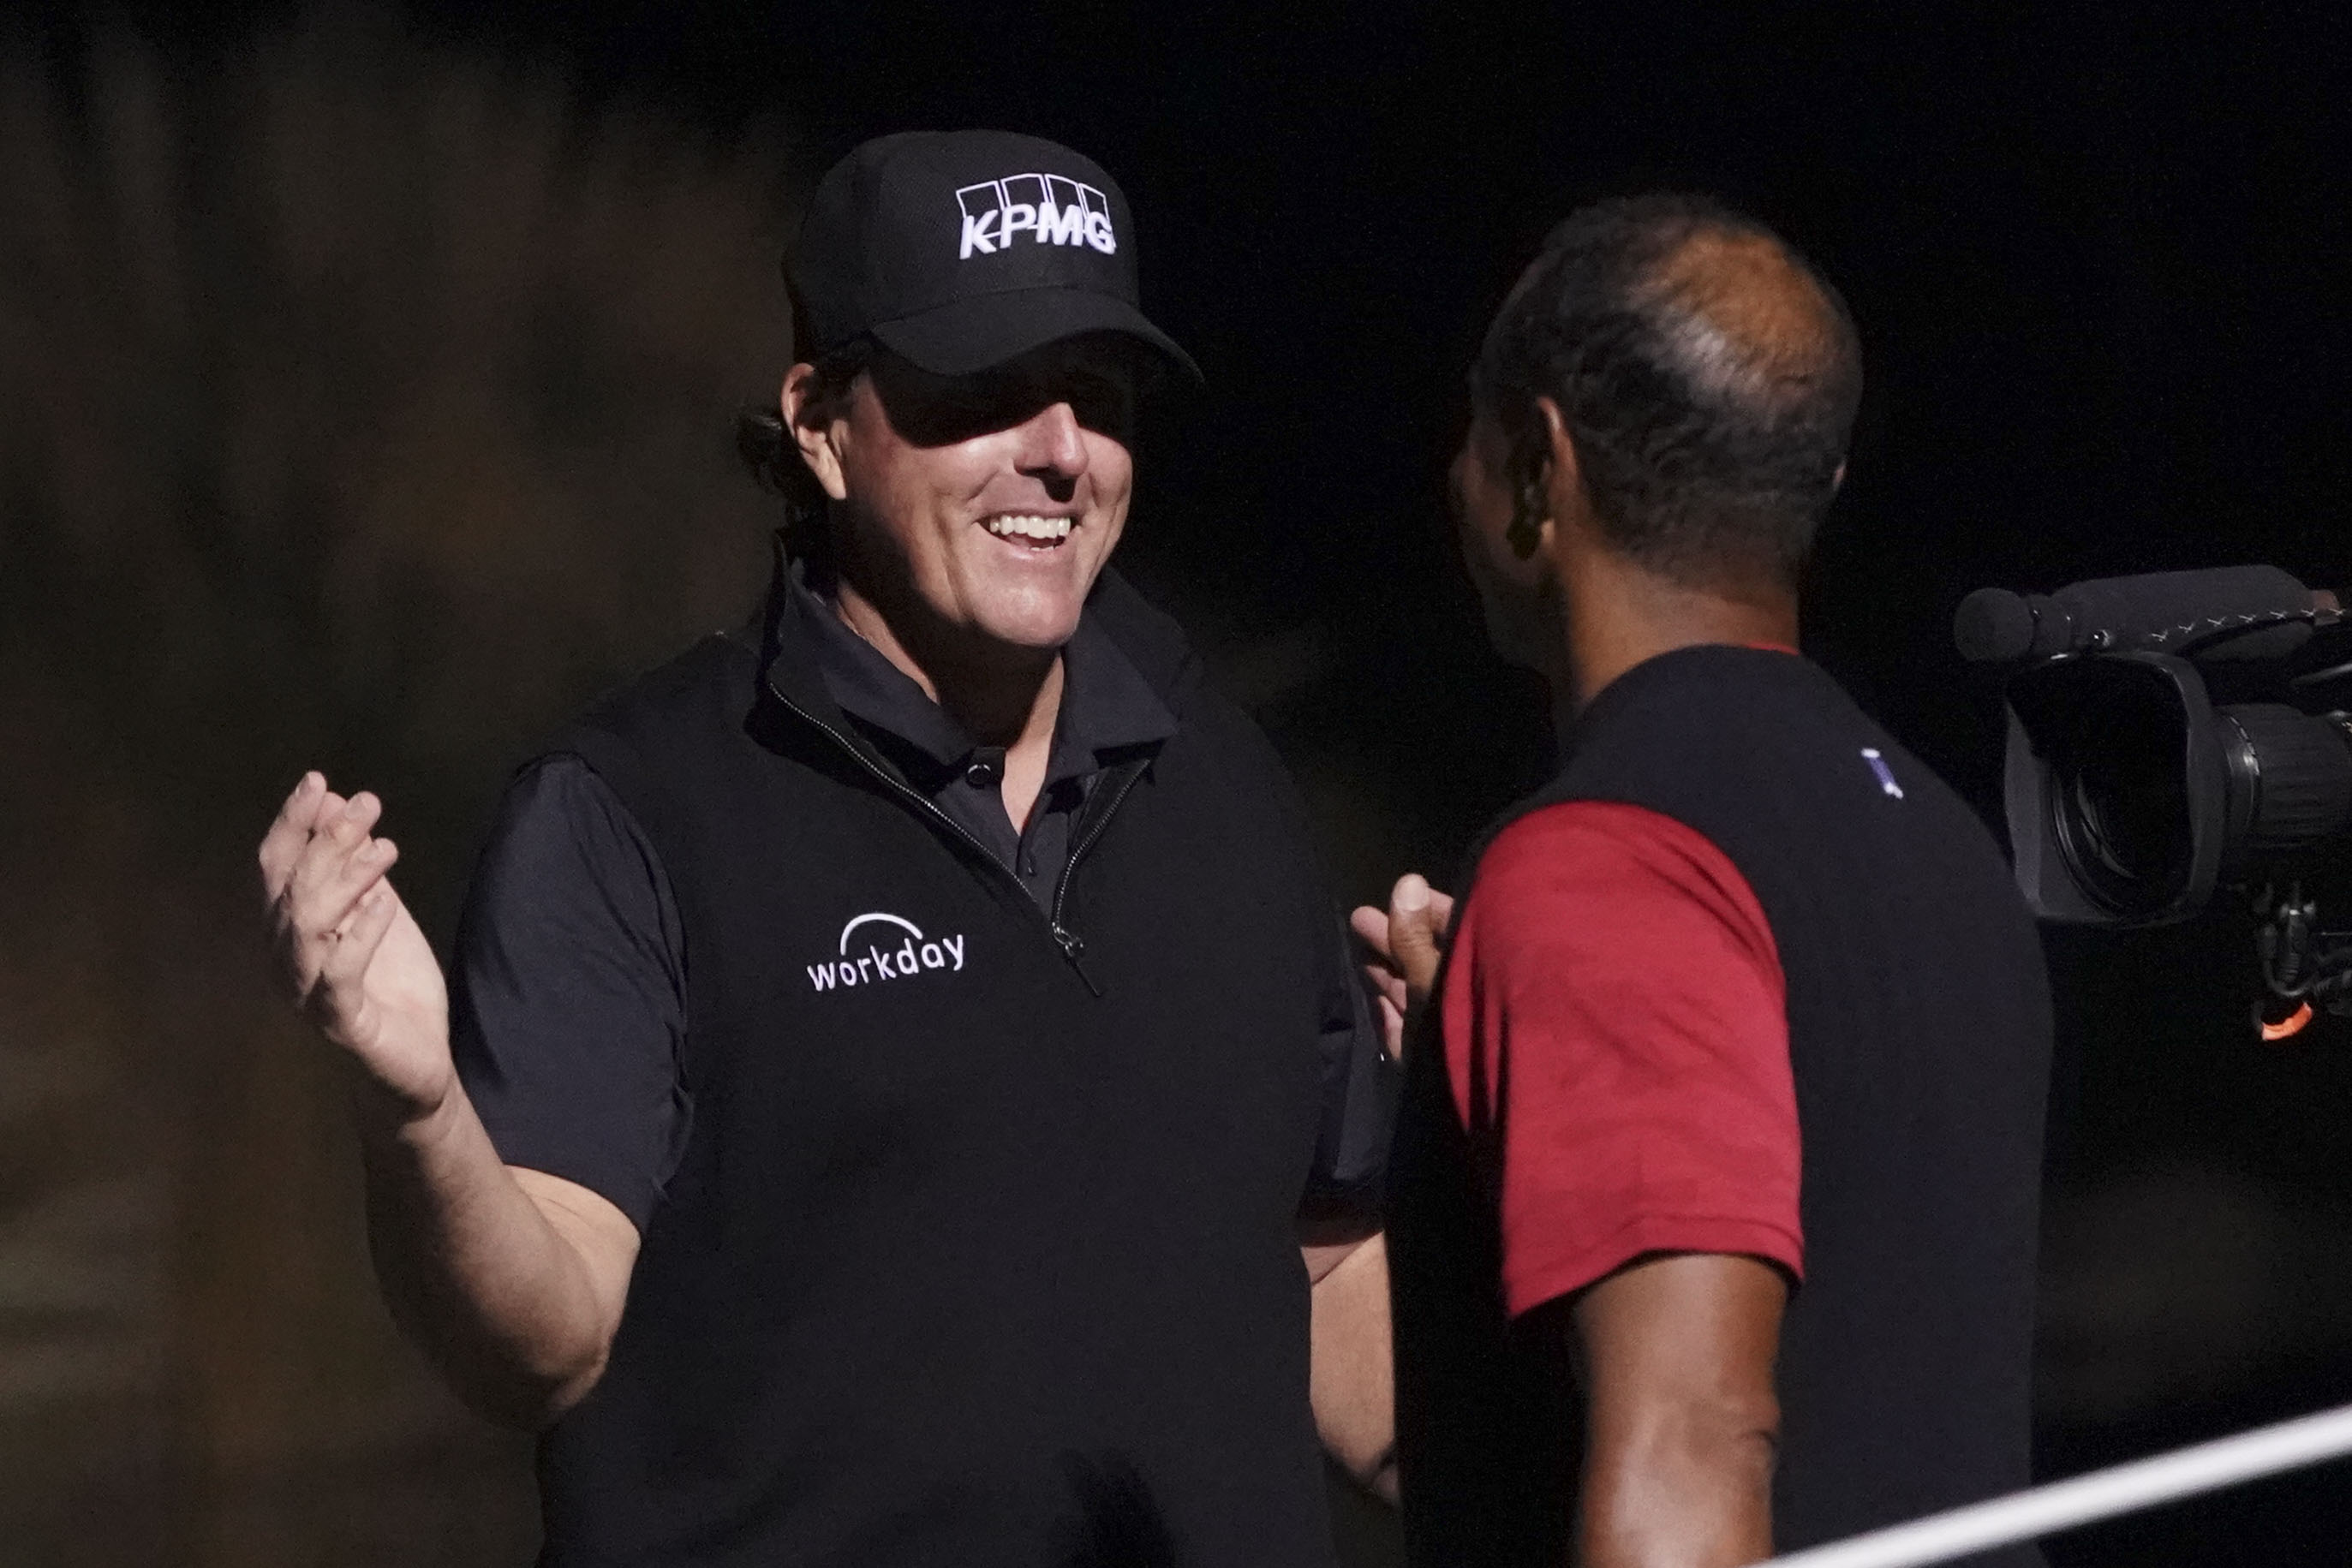 Nov 23, 2018; Las Vegas, NV, USA; Phil Mickelson (left) shakes hands with Tiger Woods (right) after The Match: Tiger vs Phil golf match at Shadow Creek Golf Course. Mandatory Credit: Kyle Terada-USA TODAY Sports